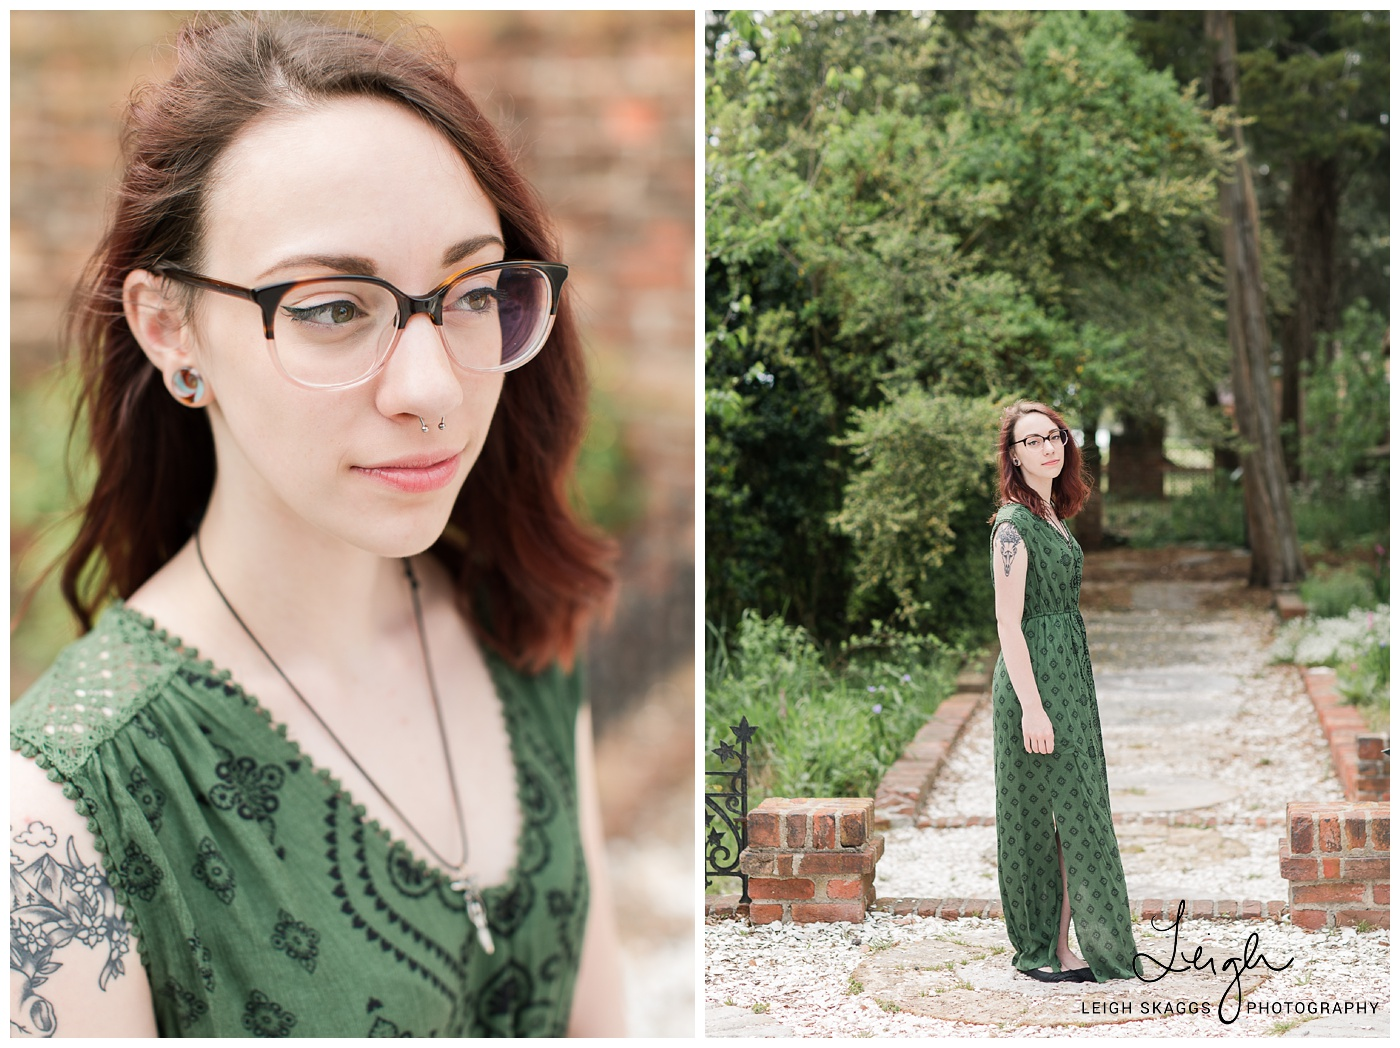 Anna is a Senior | Hermitage Senior Portrait Session